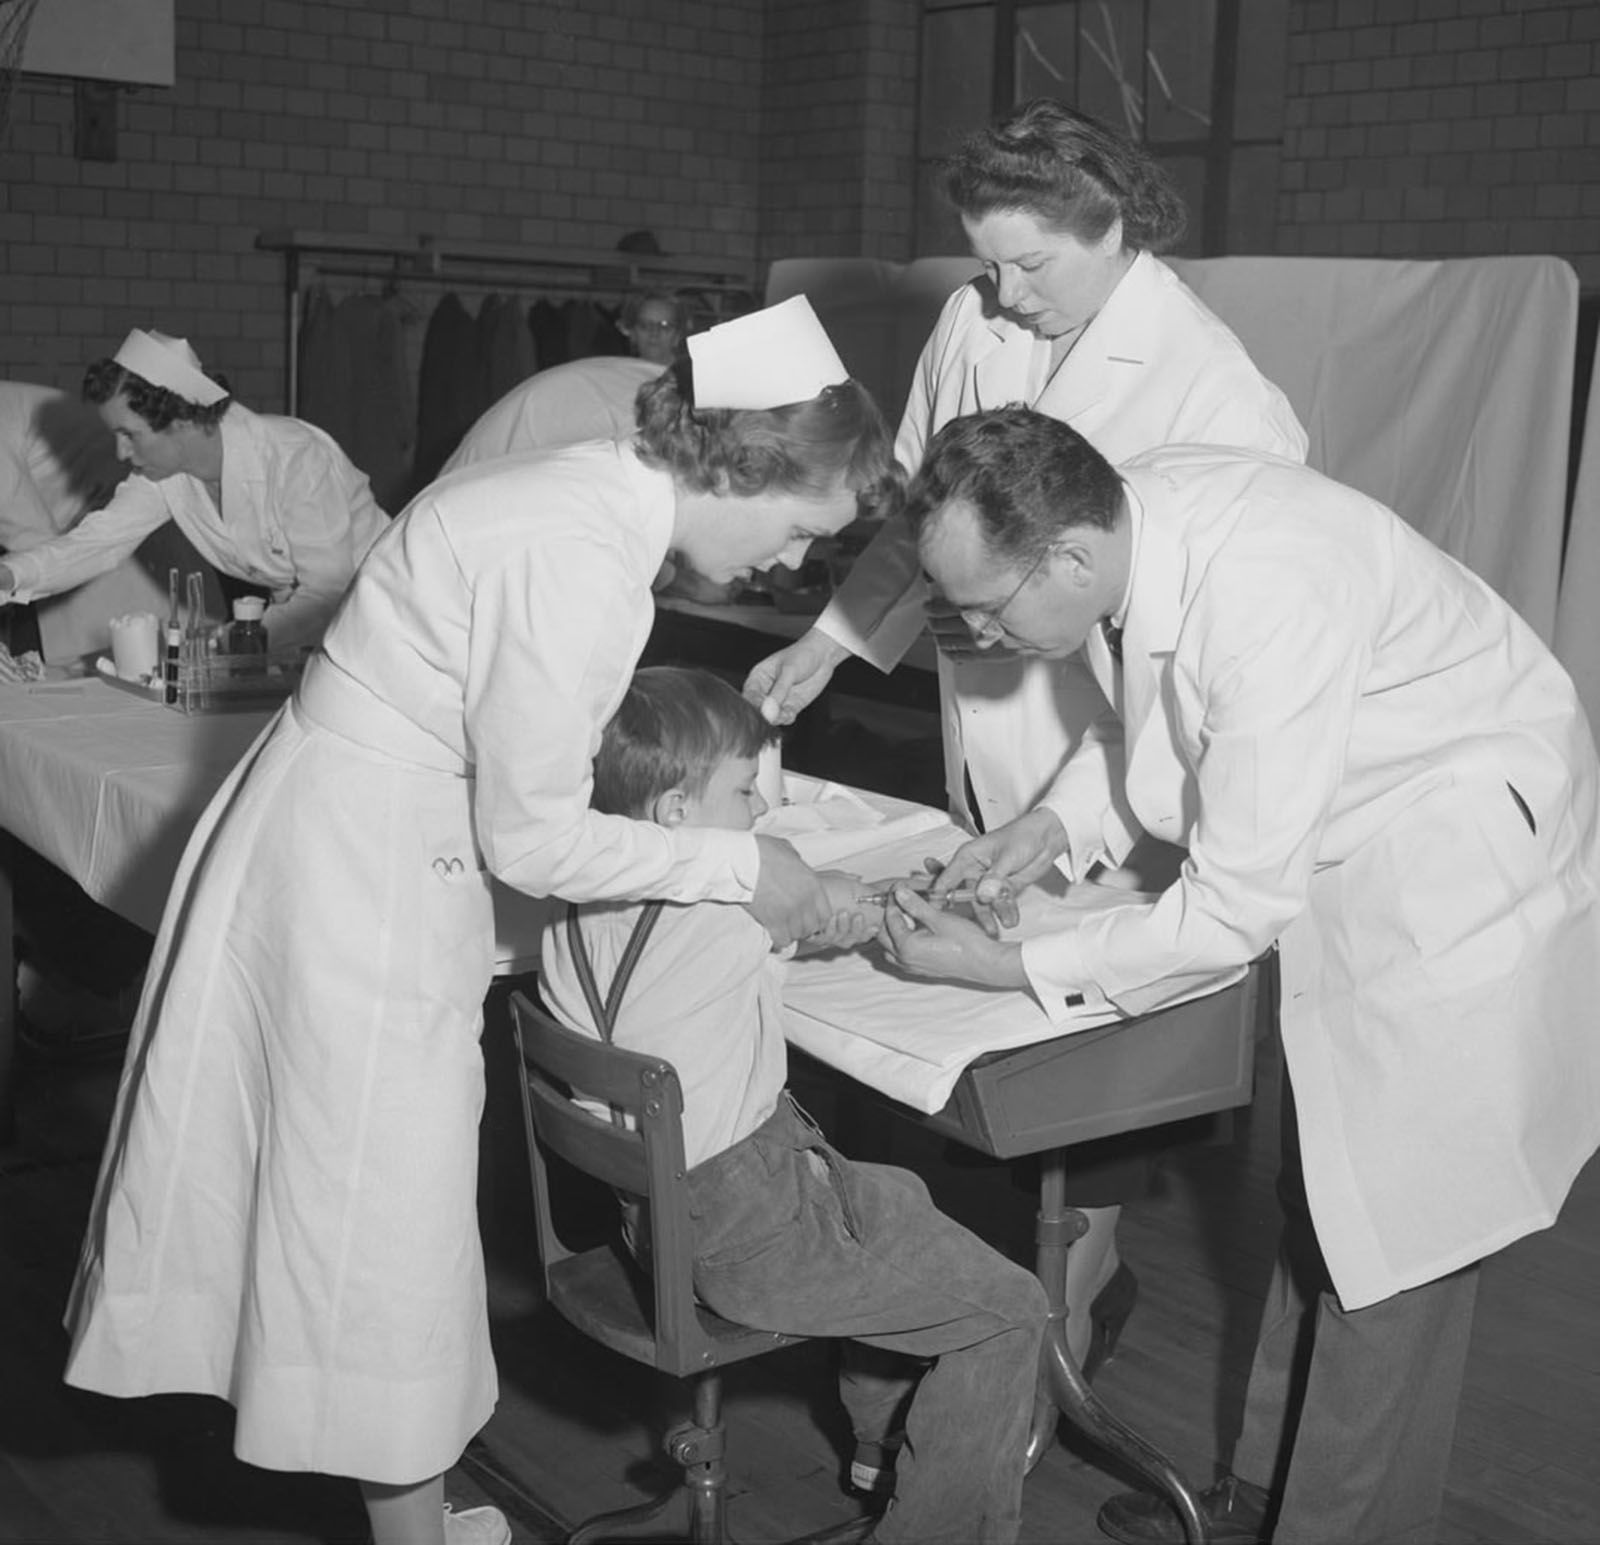 Dr. Jonas Salk (right), the scientist who developed the first polio vaccine, administers an injection to a boy in Pittsburgh. The Salk vaccine came into use in 1955. The oral vaccine was developed by Dr. Albert Sabin and was used on the public starting in 1961. (File Photo/The Associated Press)